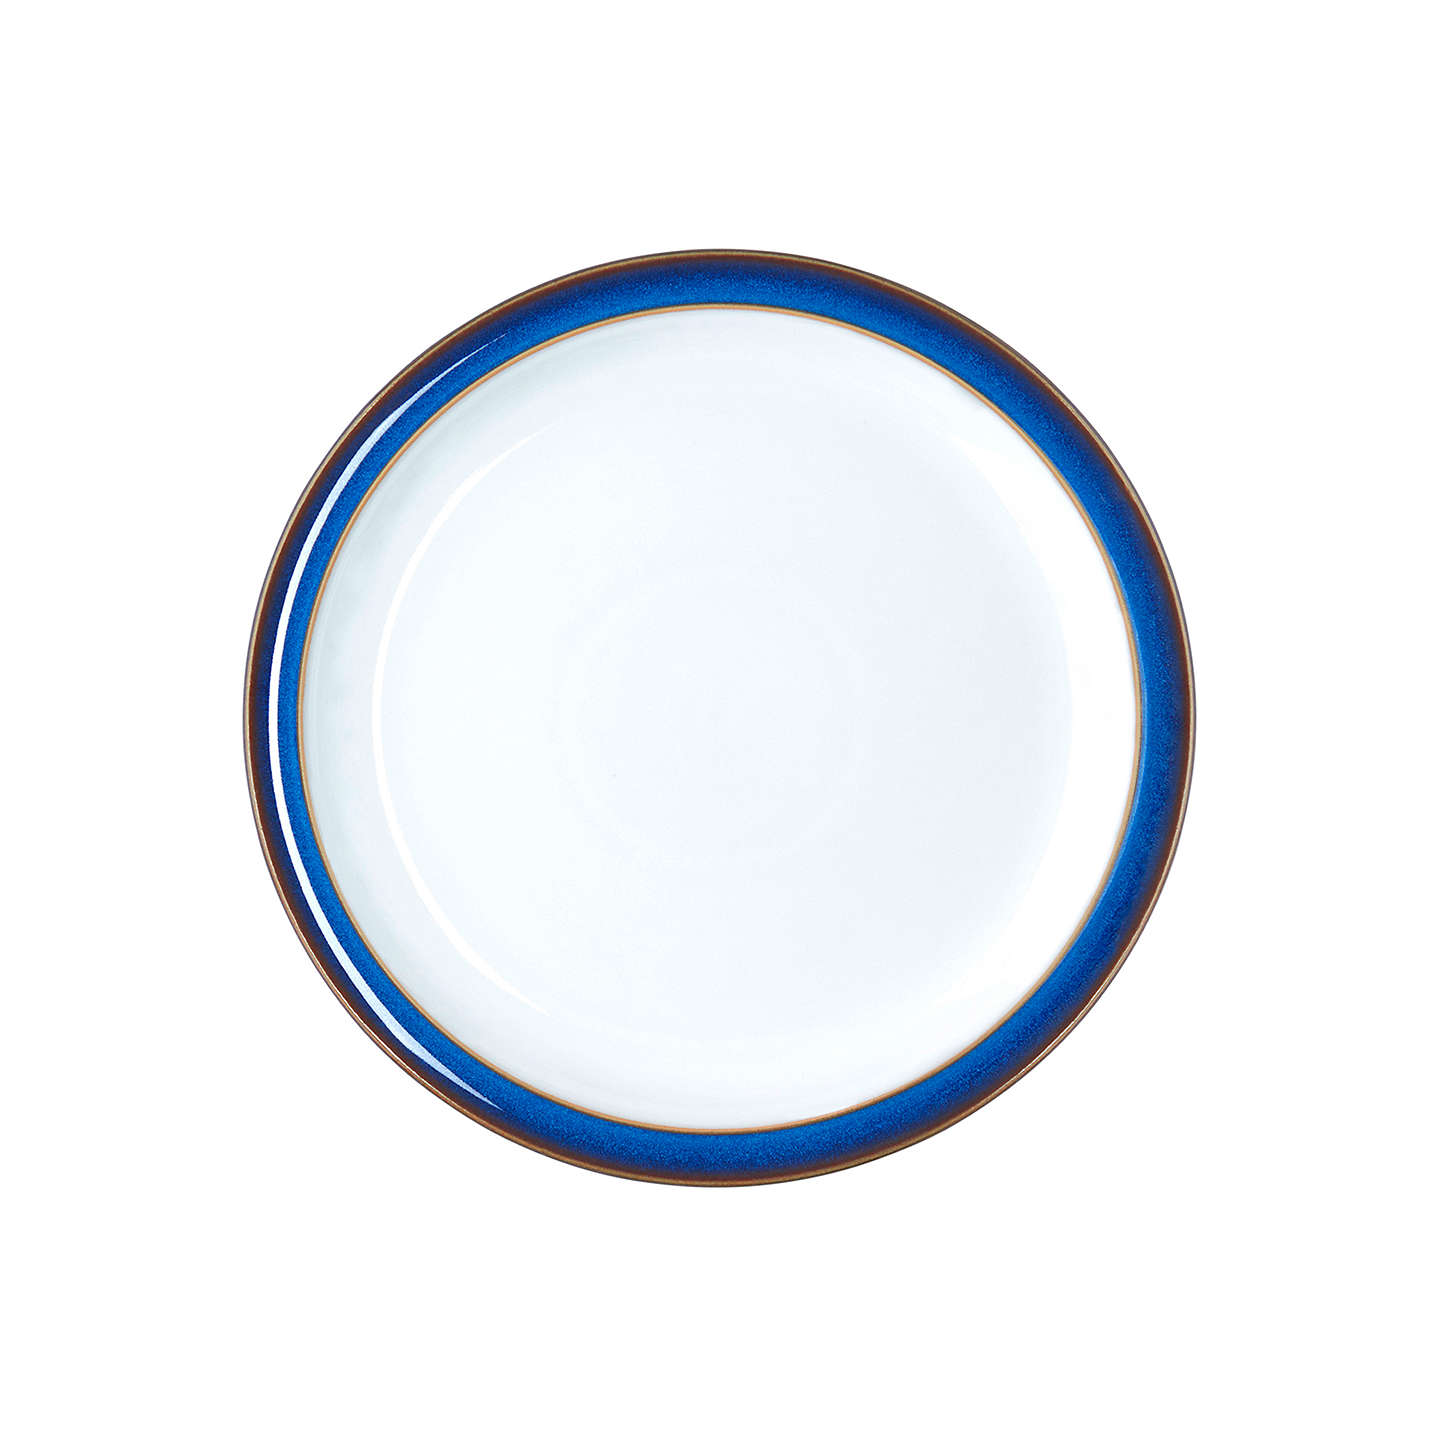 BuyDenby Imperial Blue Dinner Plate Dia.26.5cm Online at johnlewis.com ...  sc 1 st  John Lewis & Denby Imperial Blue Dinner Plate Dia.26.5cm at John Lewis